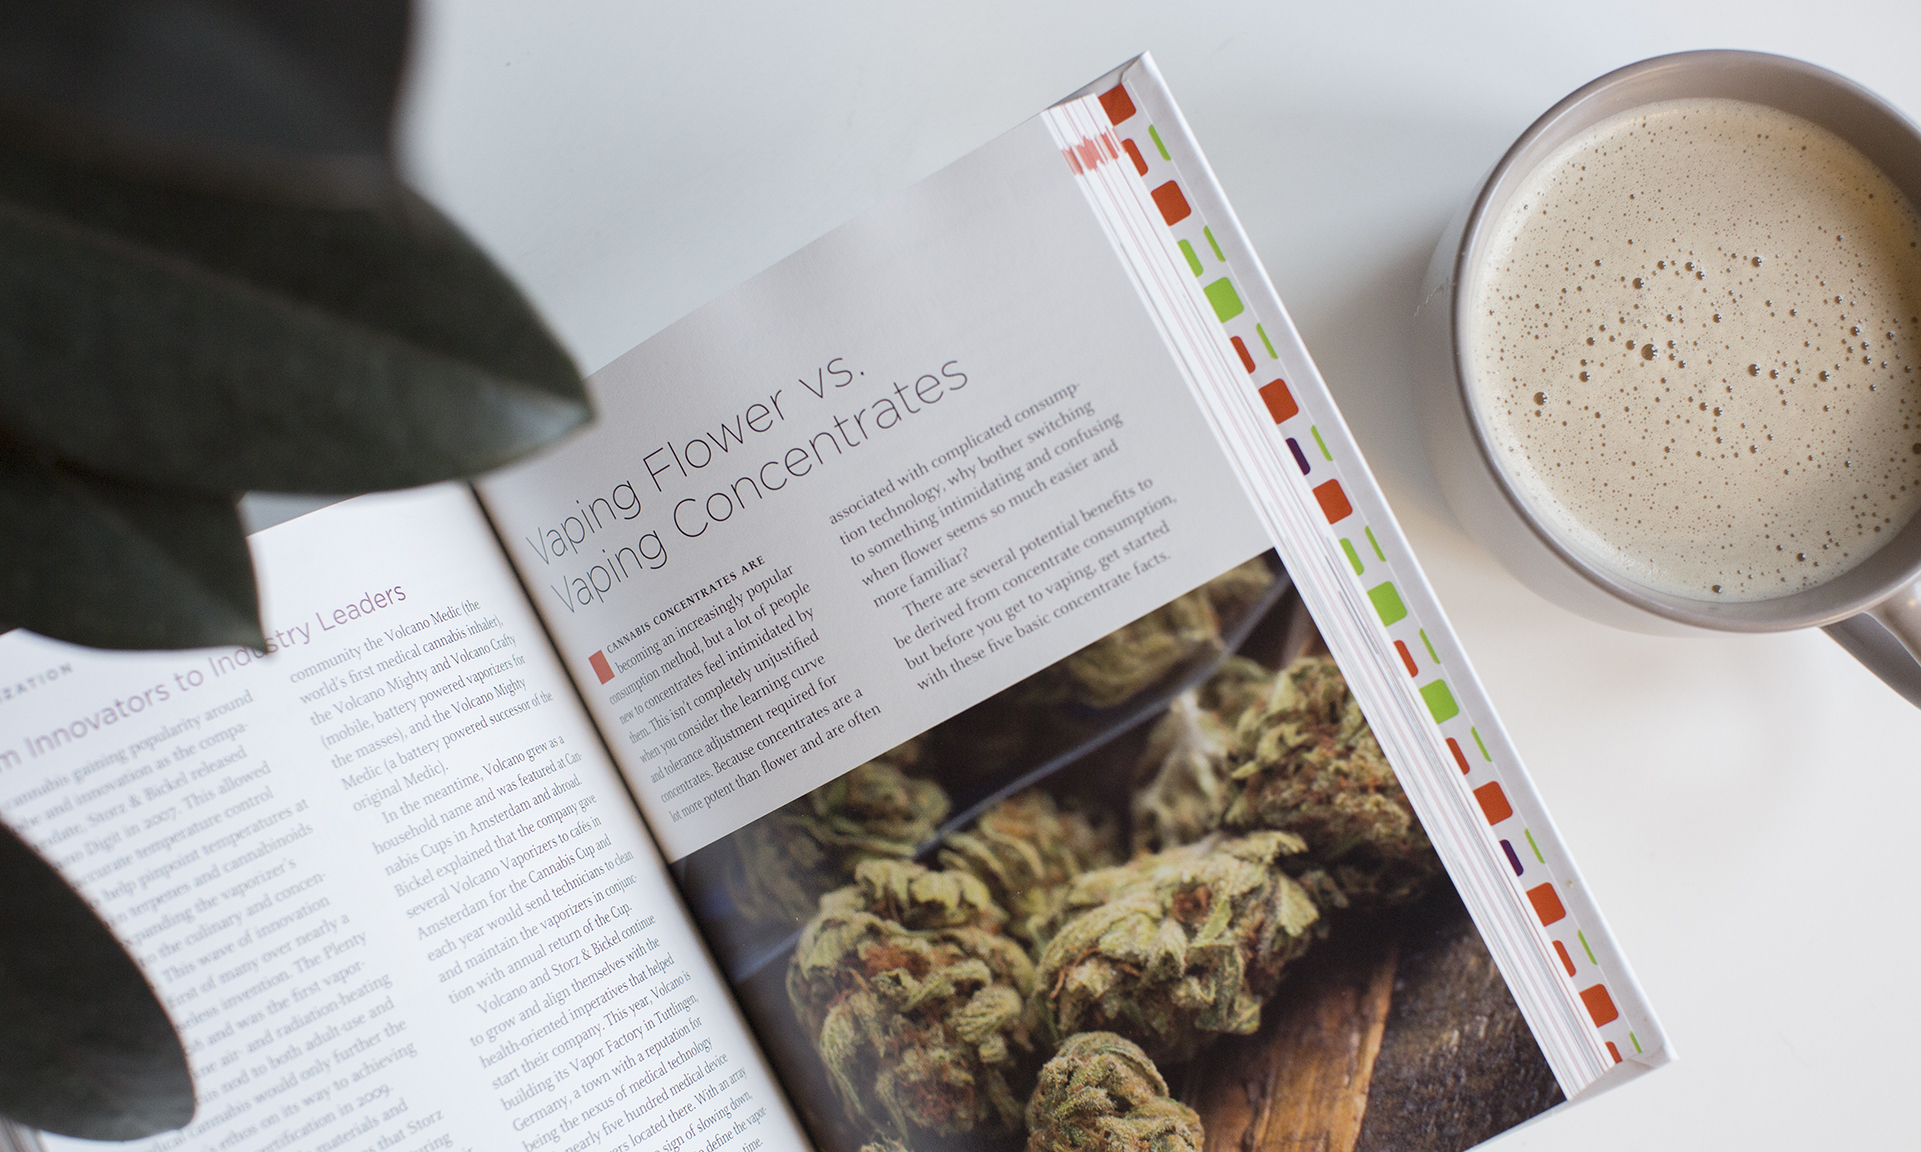 Here's Where to Buy 'The Leafly Guide to Cannabis' Book   Leafly